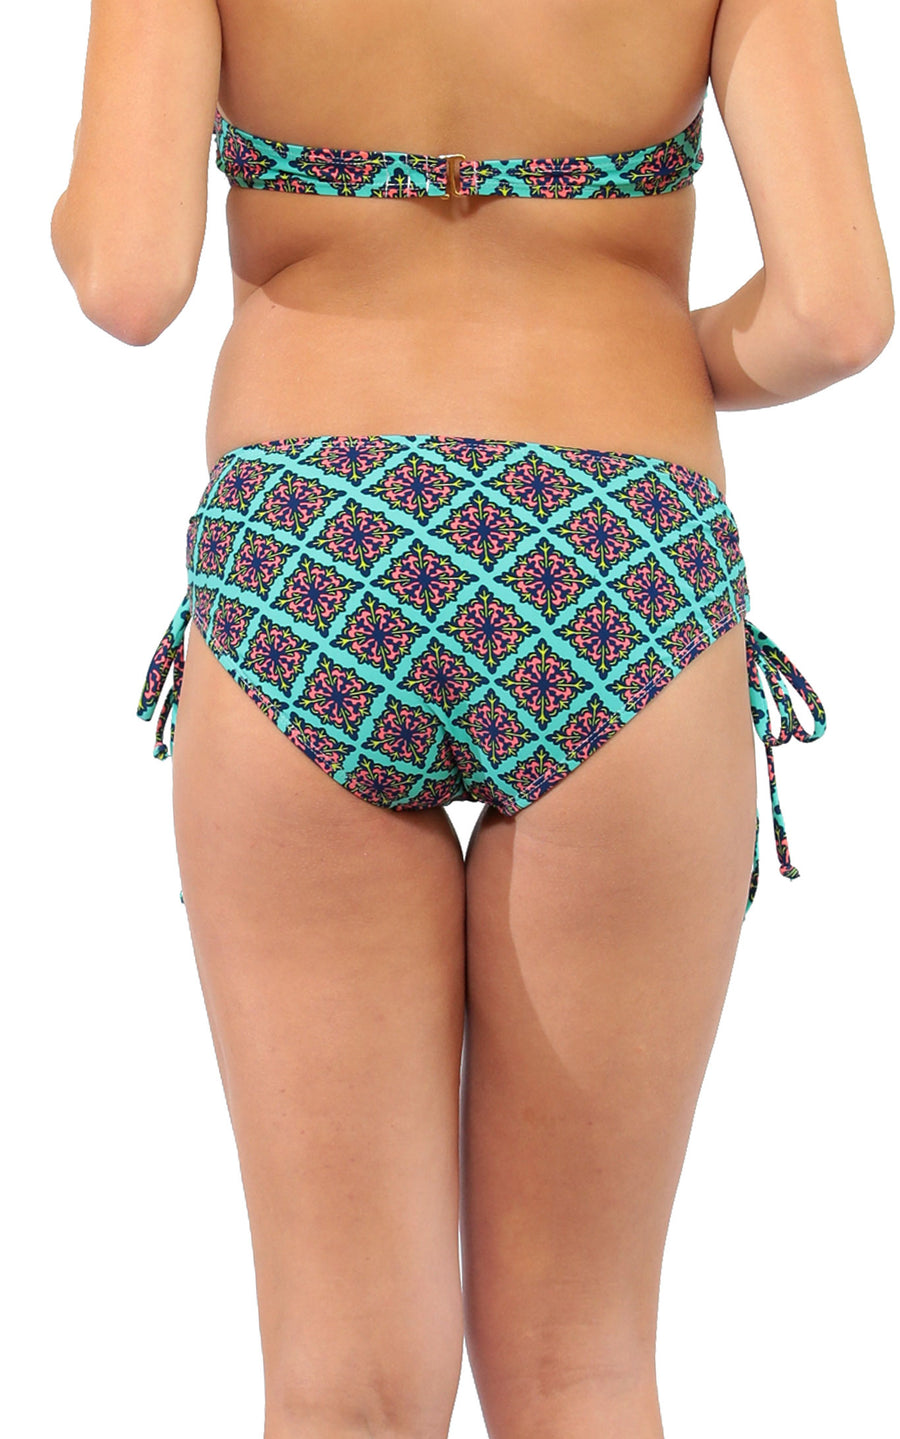 Sea Jewel Lace Up Bikini Bottom - FINAL SALE